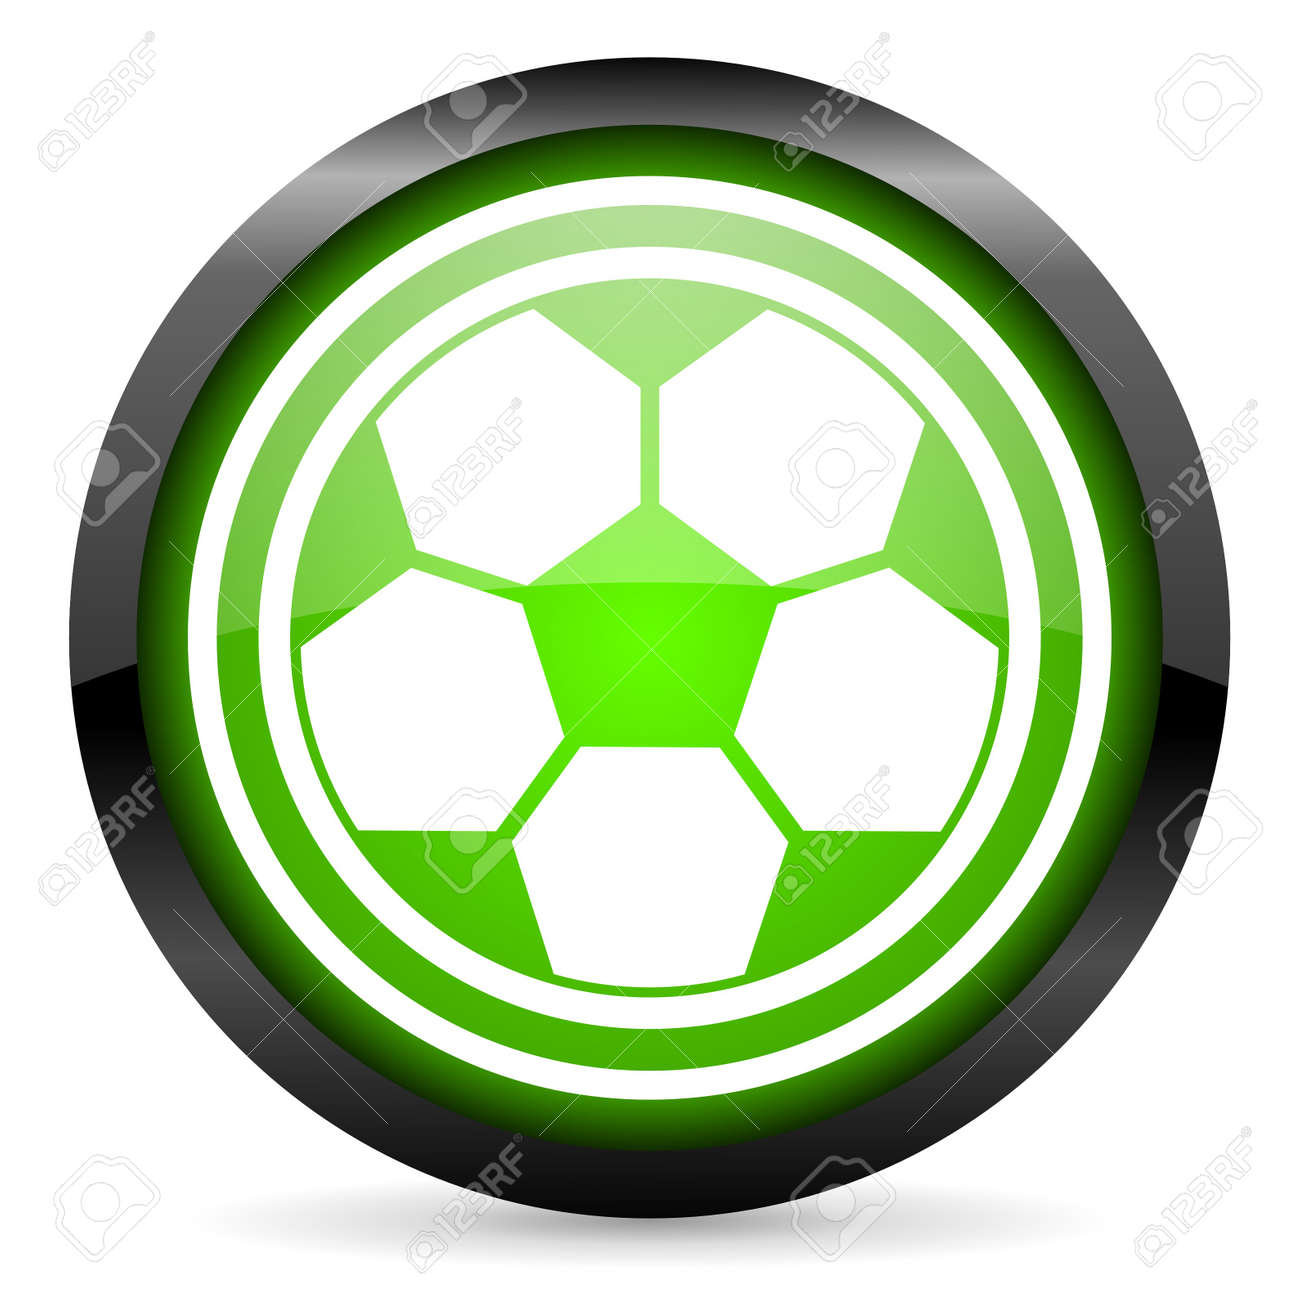 soccer green glossy icon on white background Stock Photo - 16955331